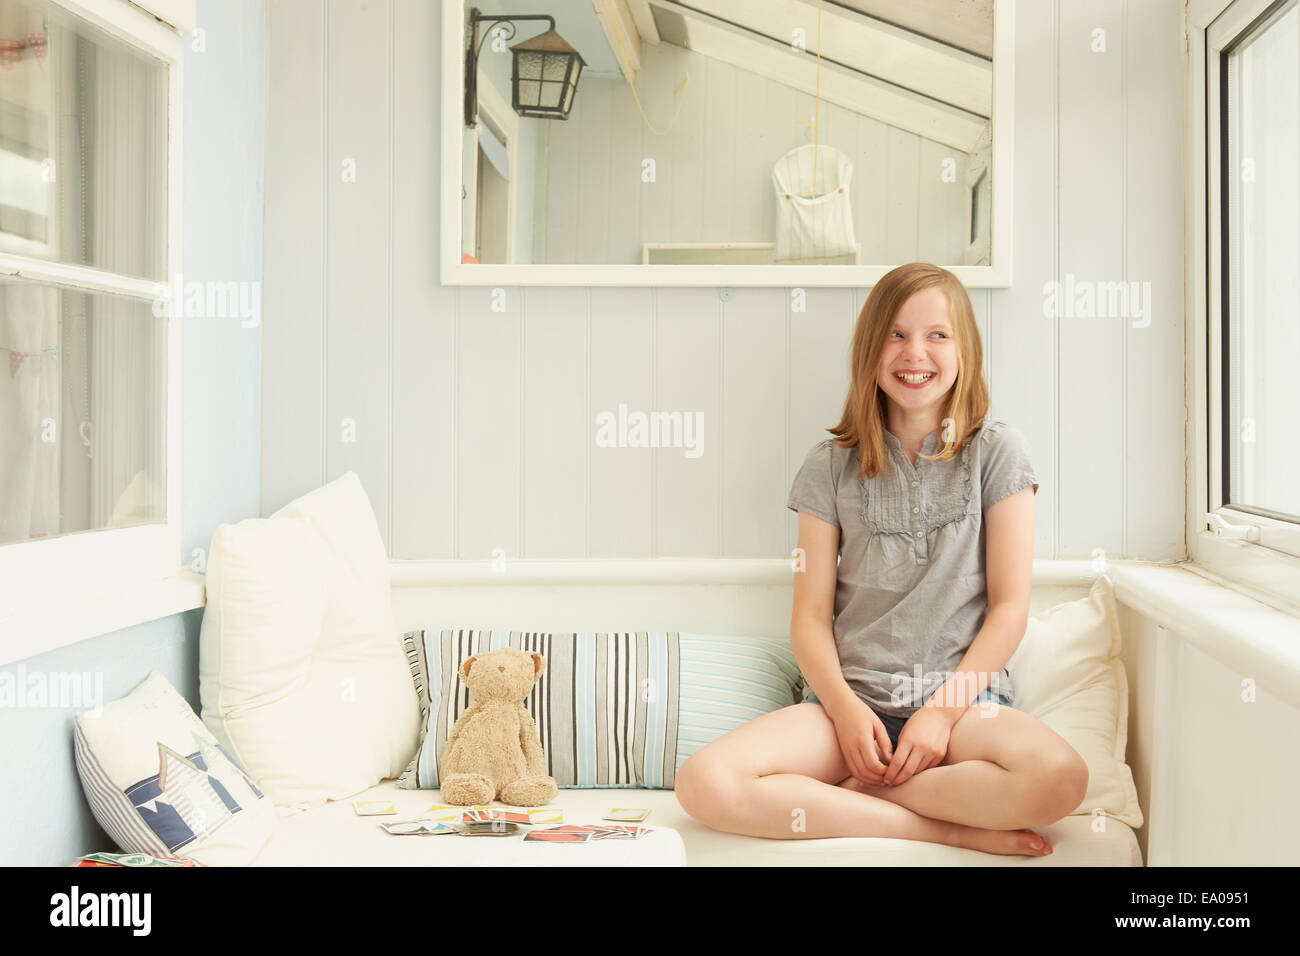 Portrait of girl looking sideways in holiday apartment porch - Stock Image